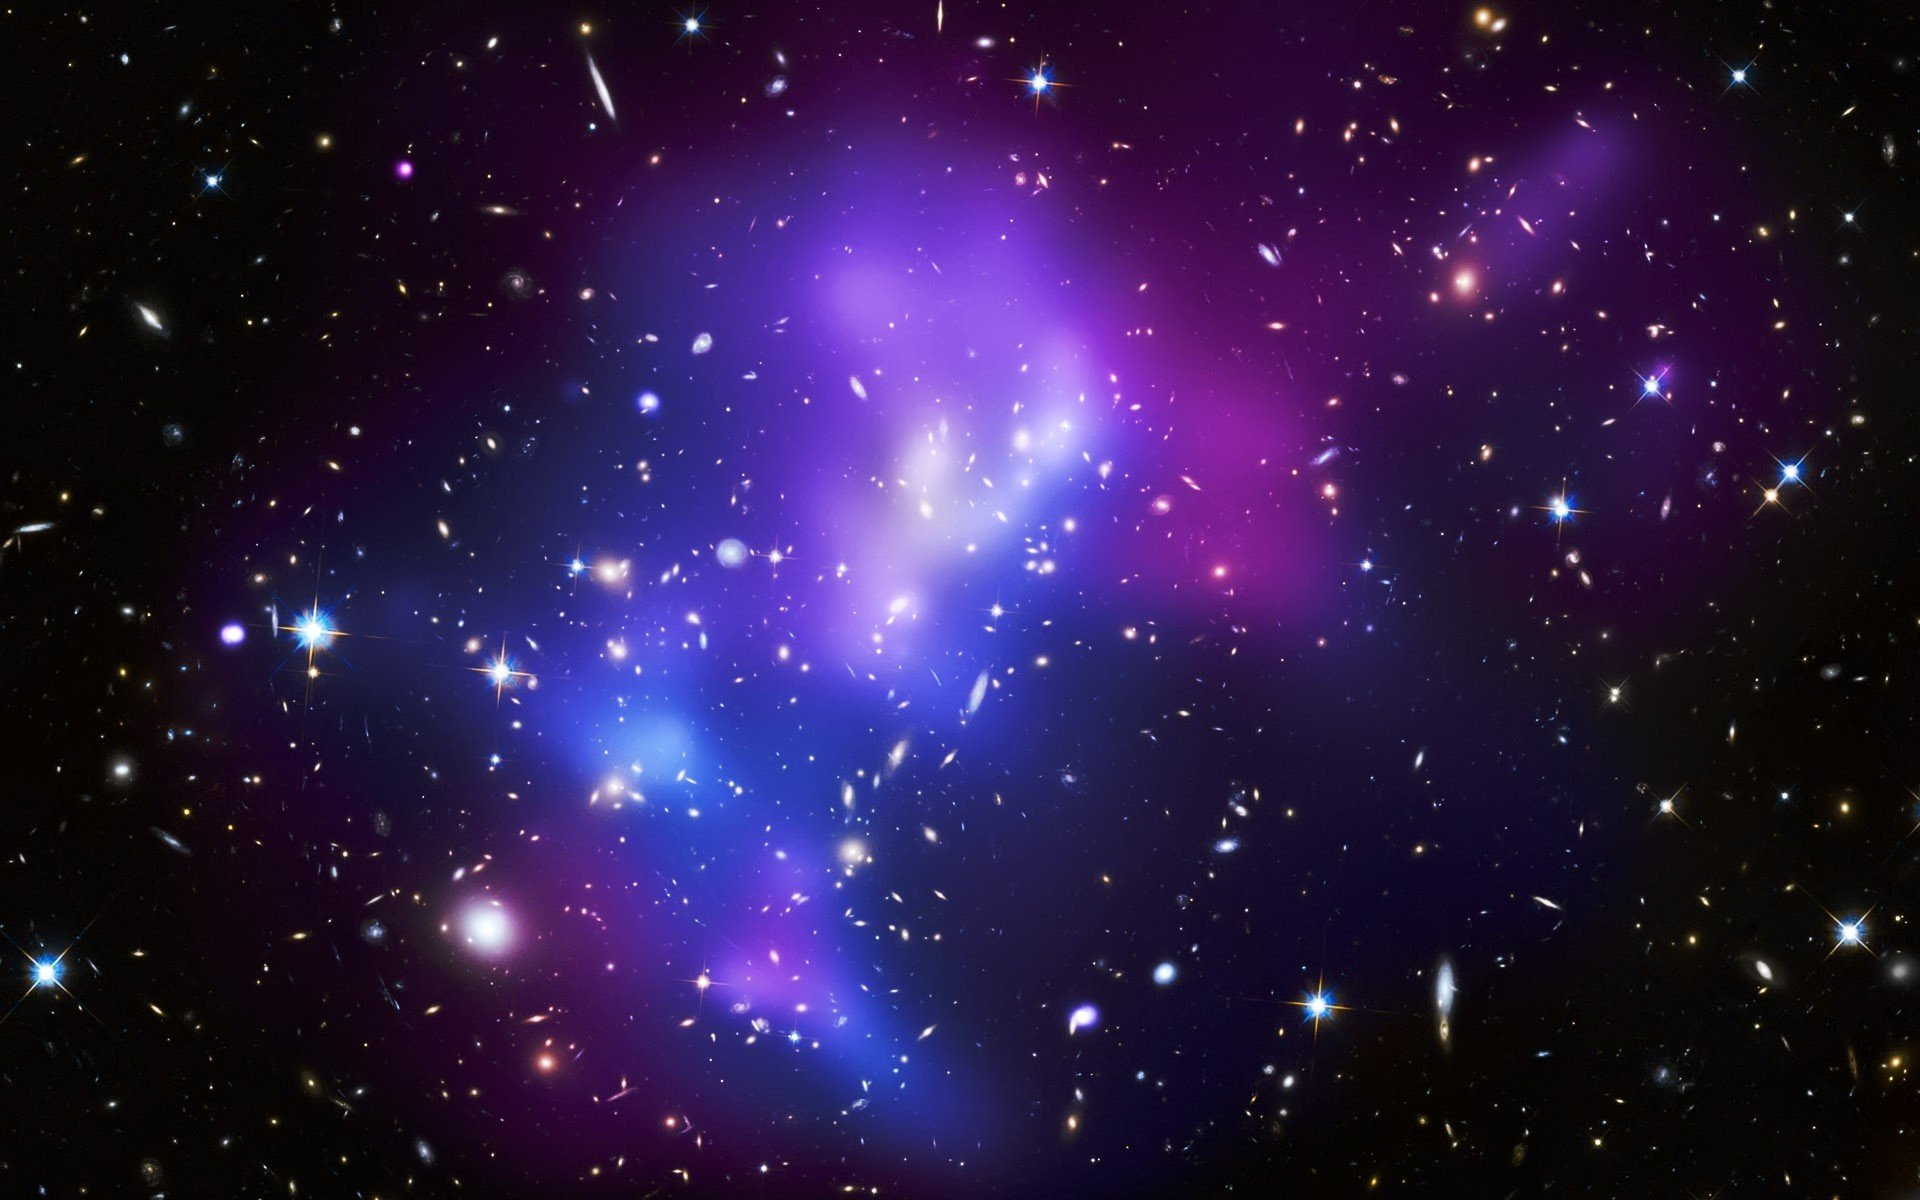 Purple and Blue Galaxy Wallpaper - WallpaperSafari